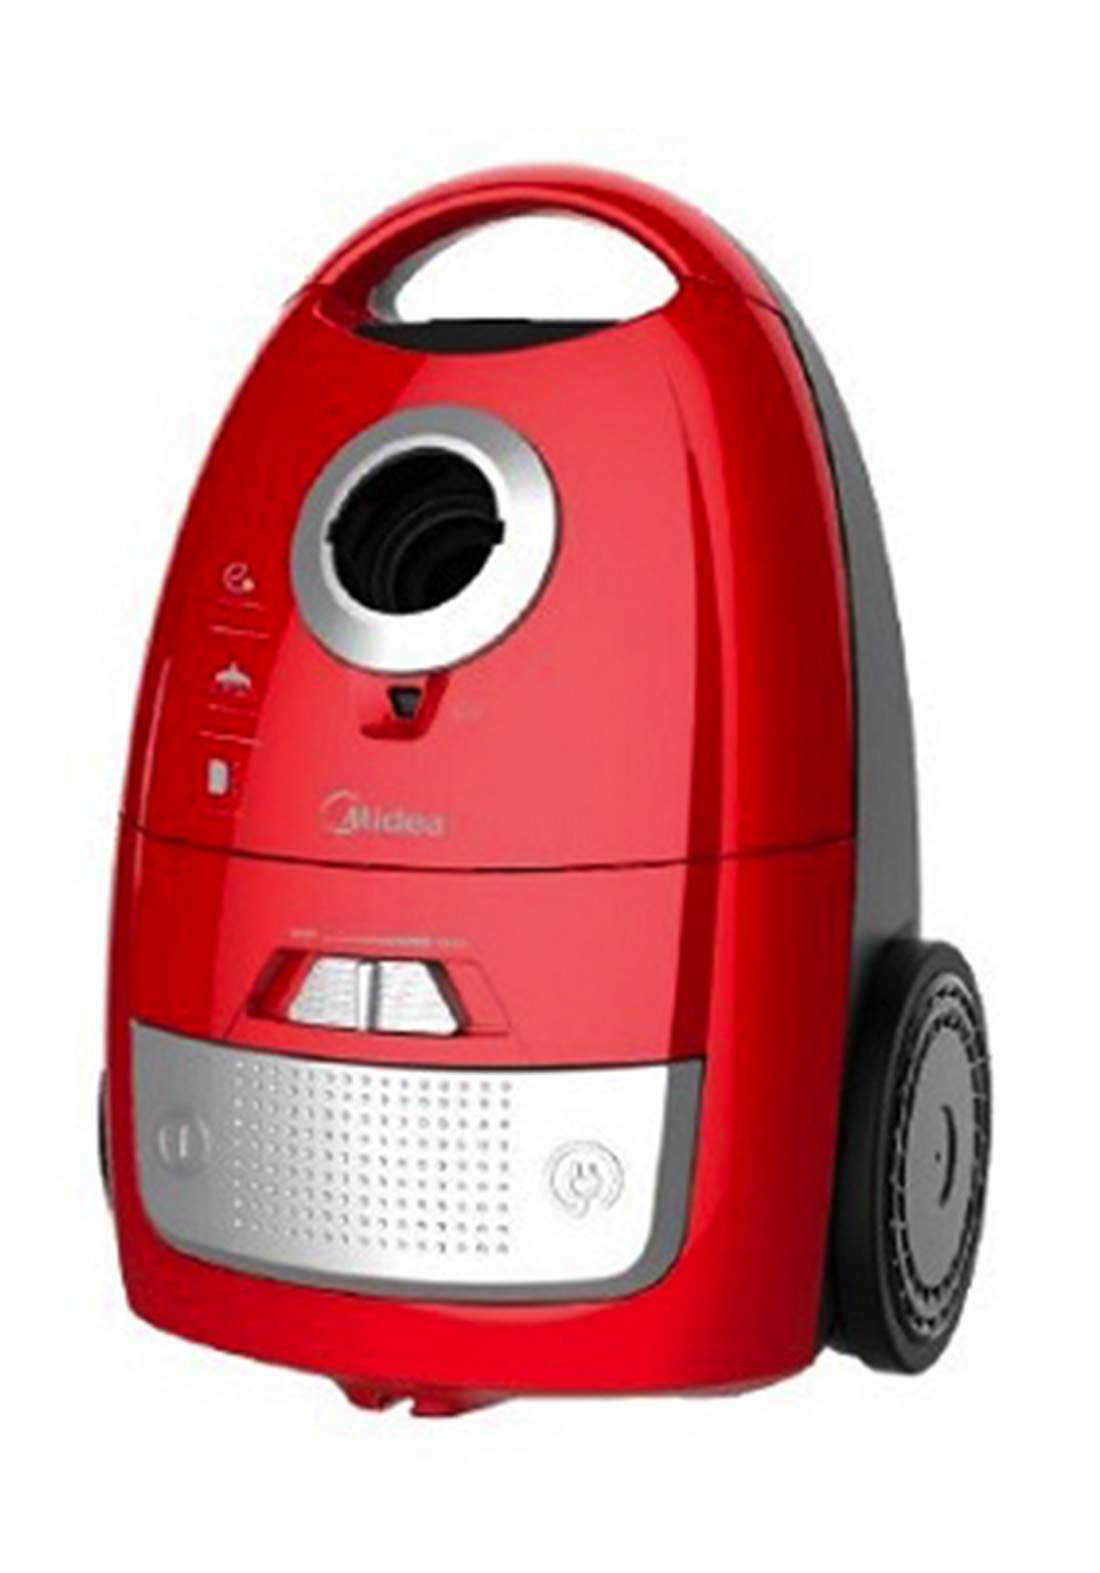 Midea vcb37a14c  Bag Canister Type Vacuum Cleaner (1600W) 1.5L مكنسة كهربائية